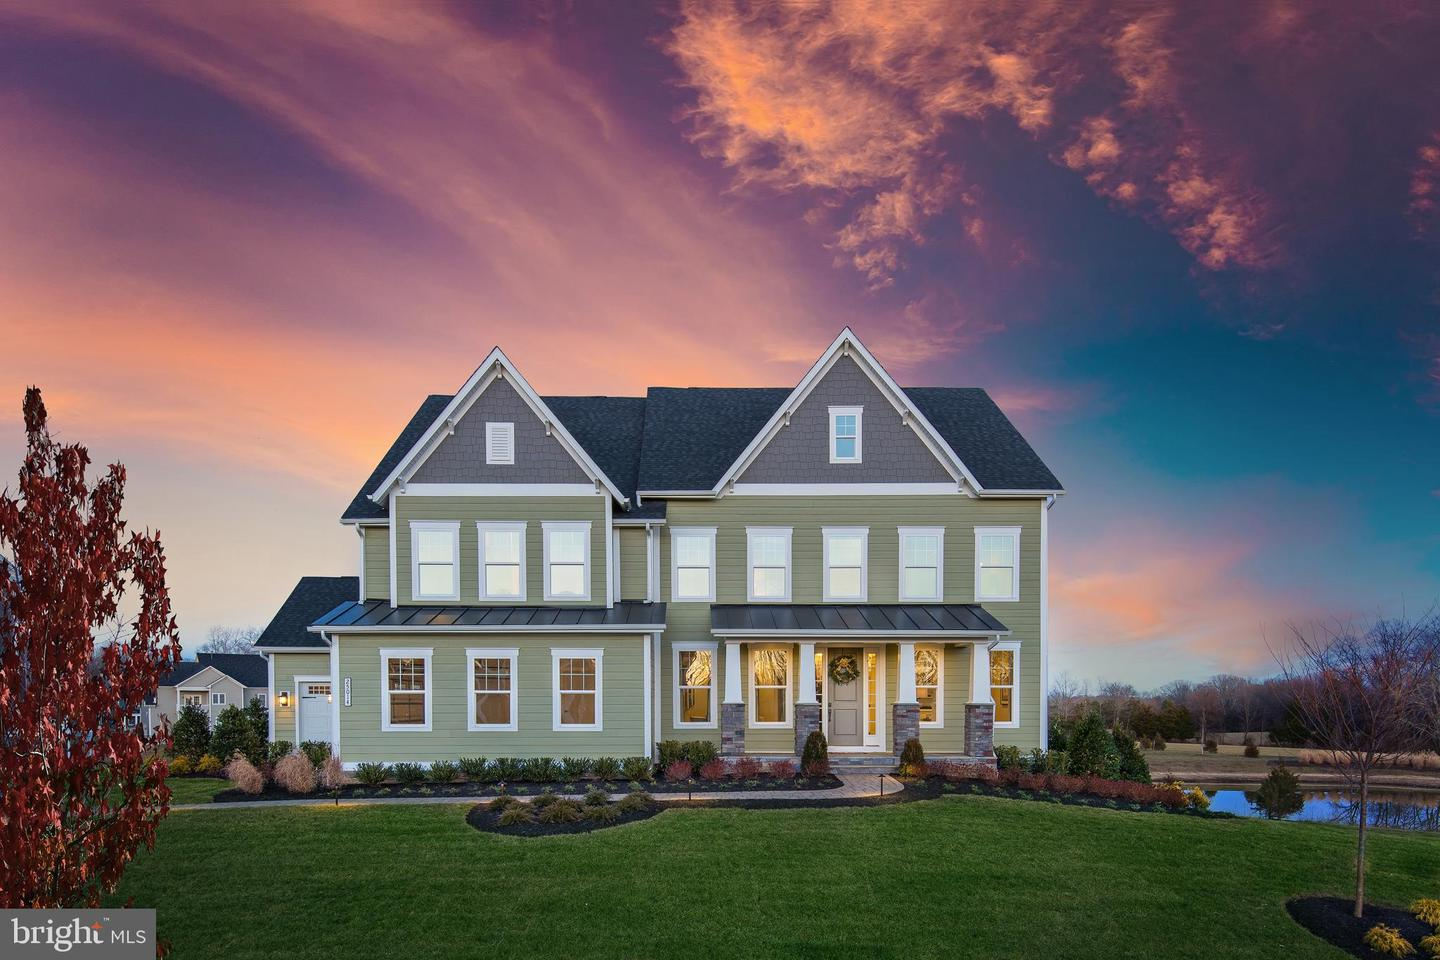 517 Seeger Lane West Chester, PA 19380